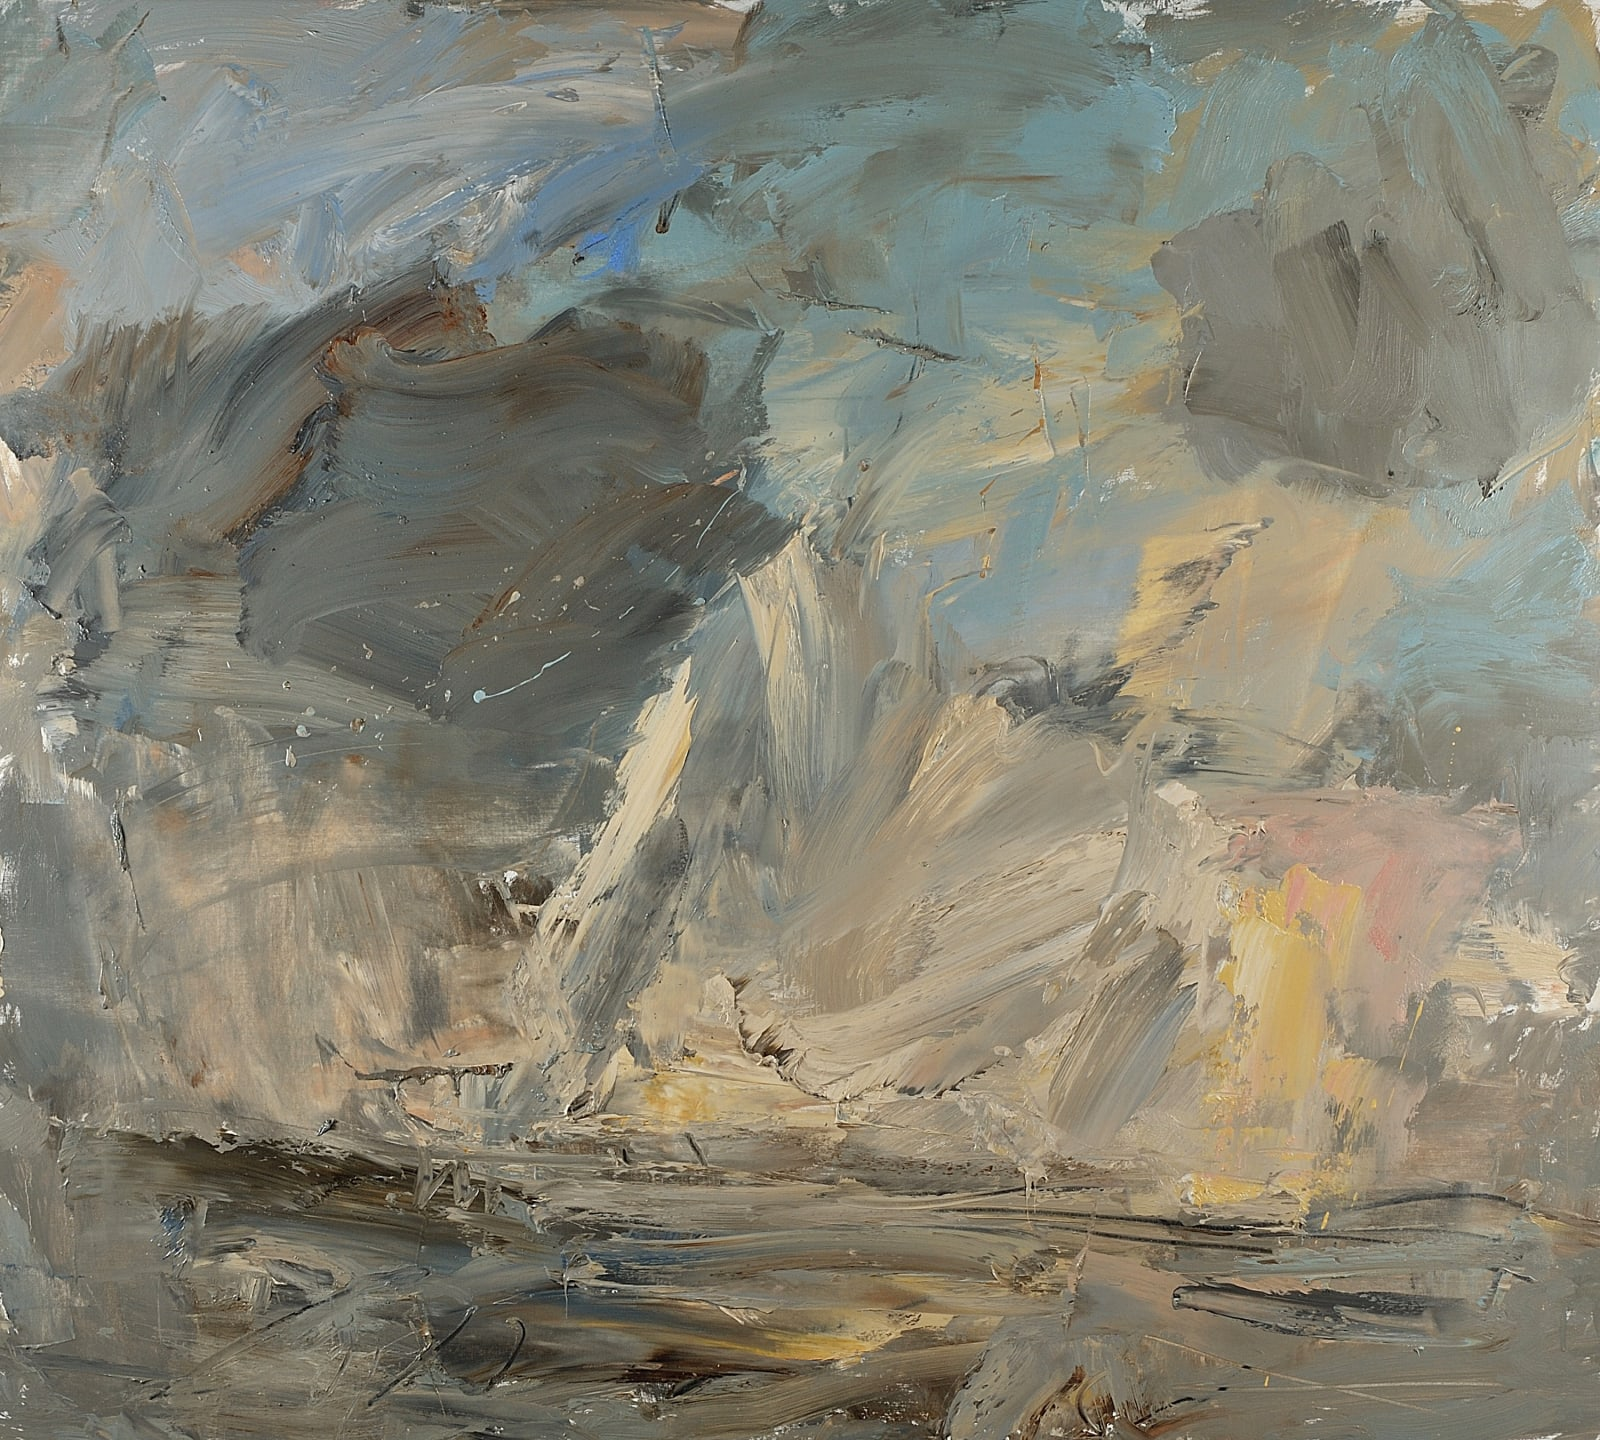 Flying Pieces (North Kent Marshes) oil on canvas 90cm x 100cm